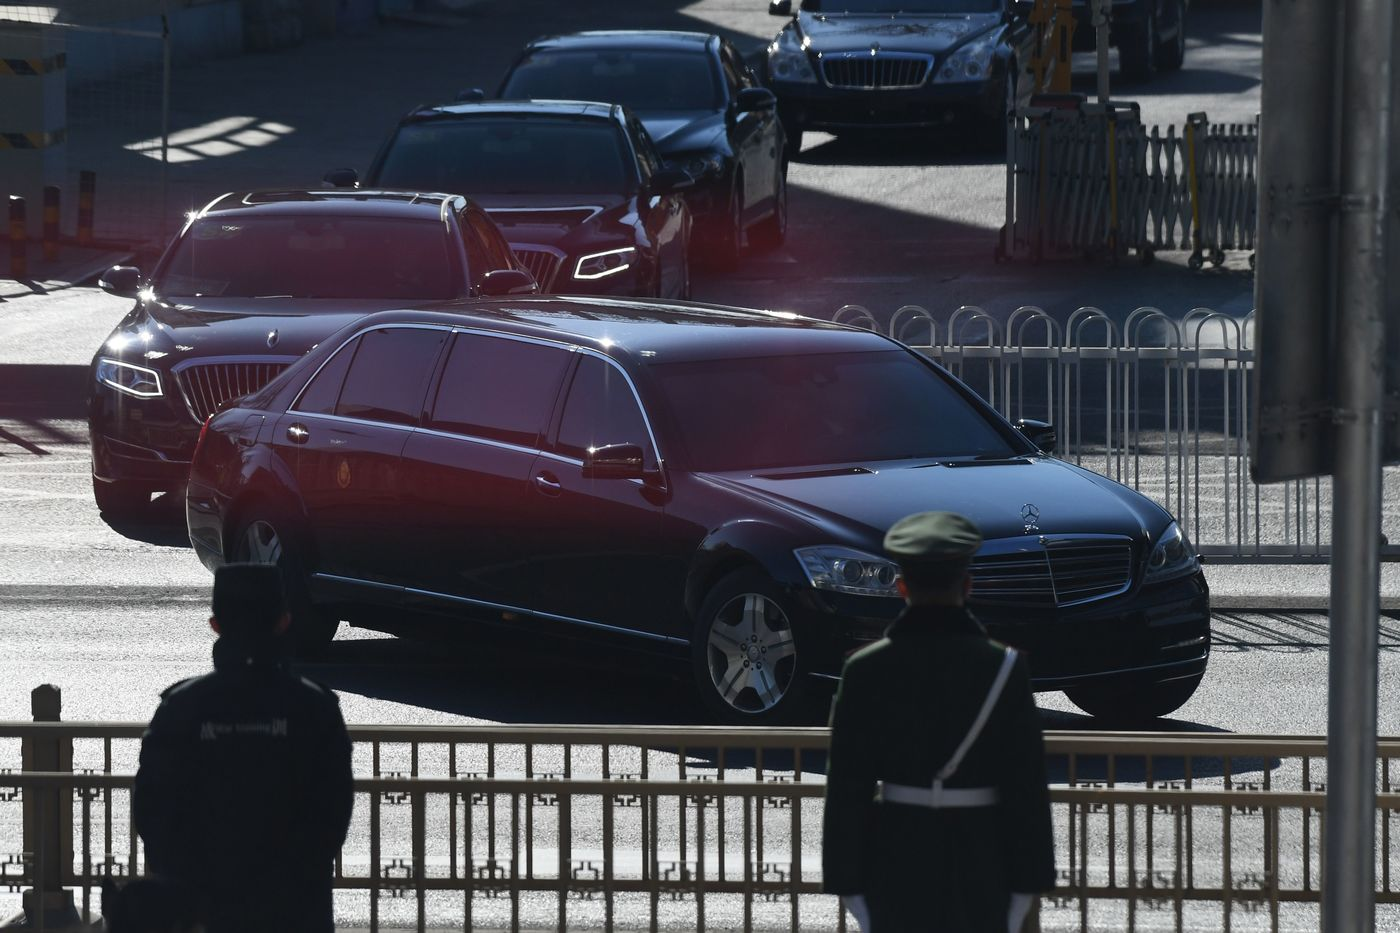 Cars in the motorcade of North Korean leader Kim Jong Un leave from Beijing Railway Station in Beijing on January 8, 2019. - North Korean leader Kim Jong Un arrived in Beijing on January 8 on an unannounced visit for talks with President Xi Jinping, as preparations ramp up for an expected second summit with Donald Trump. (Photo by GREG BAKER / AFP)